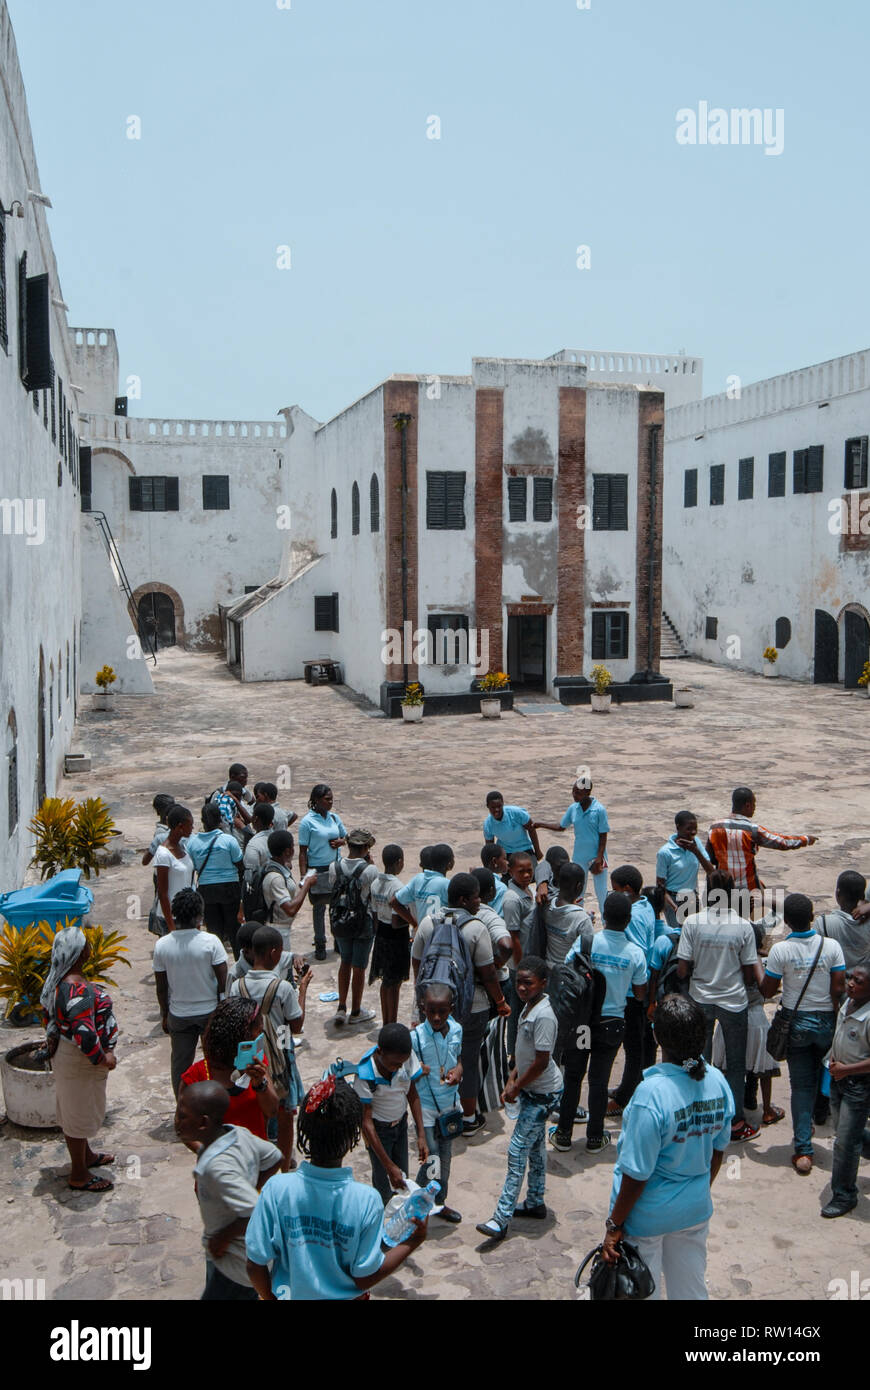 A nice photo of local Ghanaian school students visiting the old historic Elmina slave castle at the coast of Ghana, West Africa - Stock Image